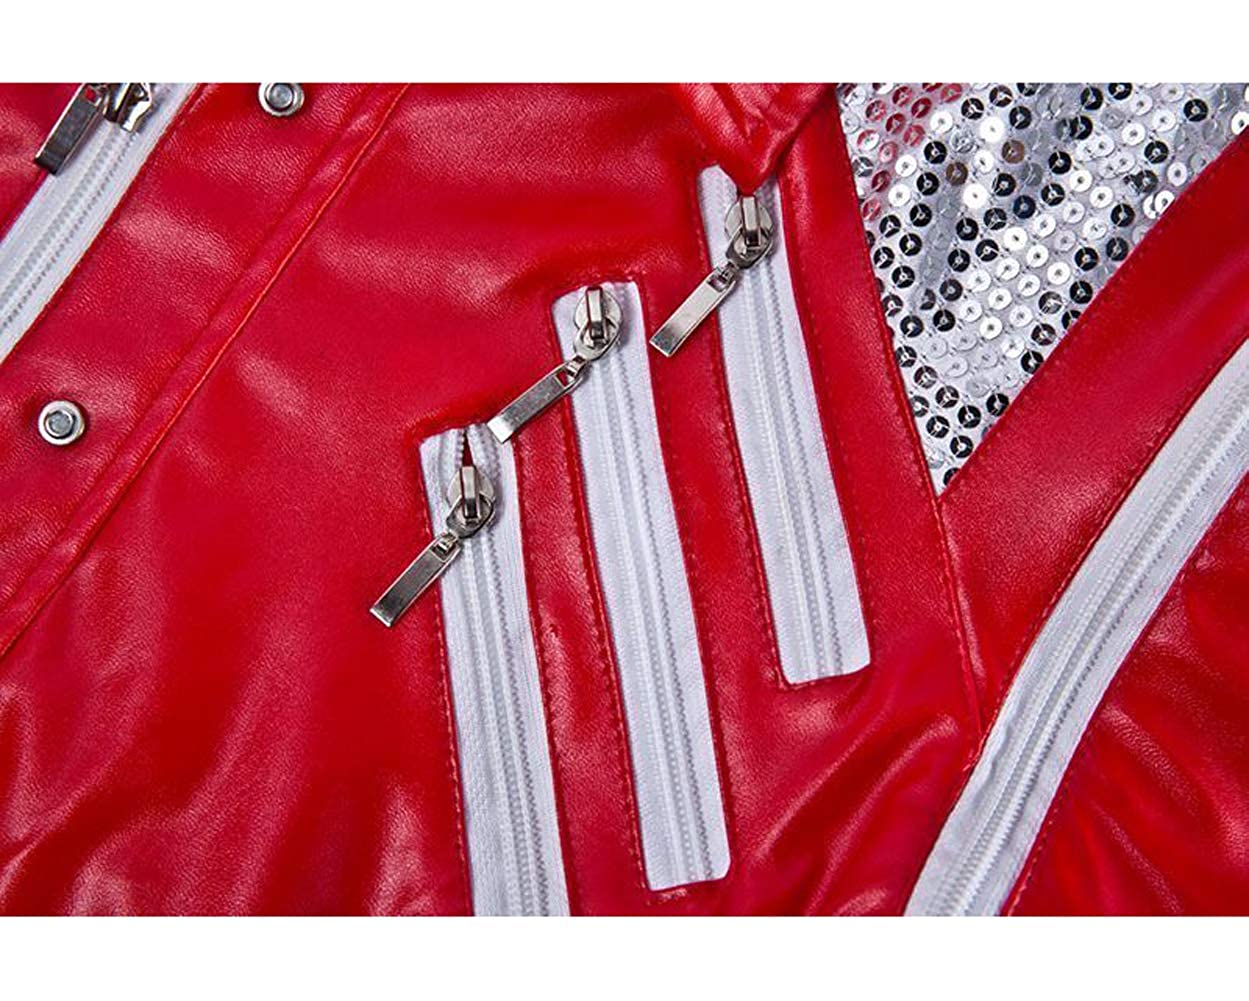 RED Costume Biker Leather Jacket Cosplay for Michael Jackson Leather Jacket Beat it Jacket